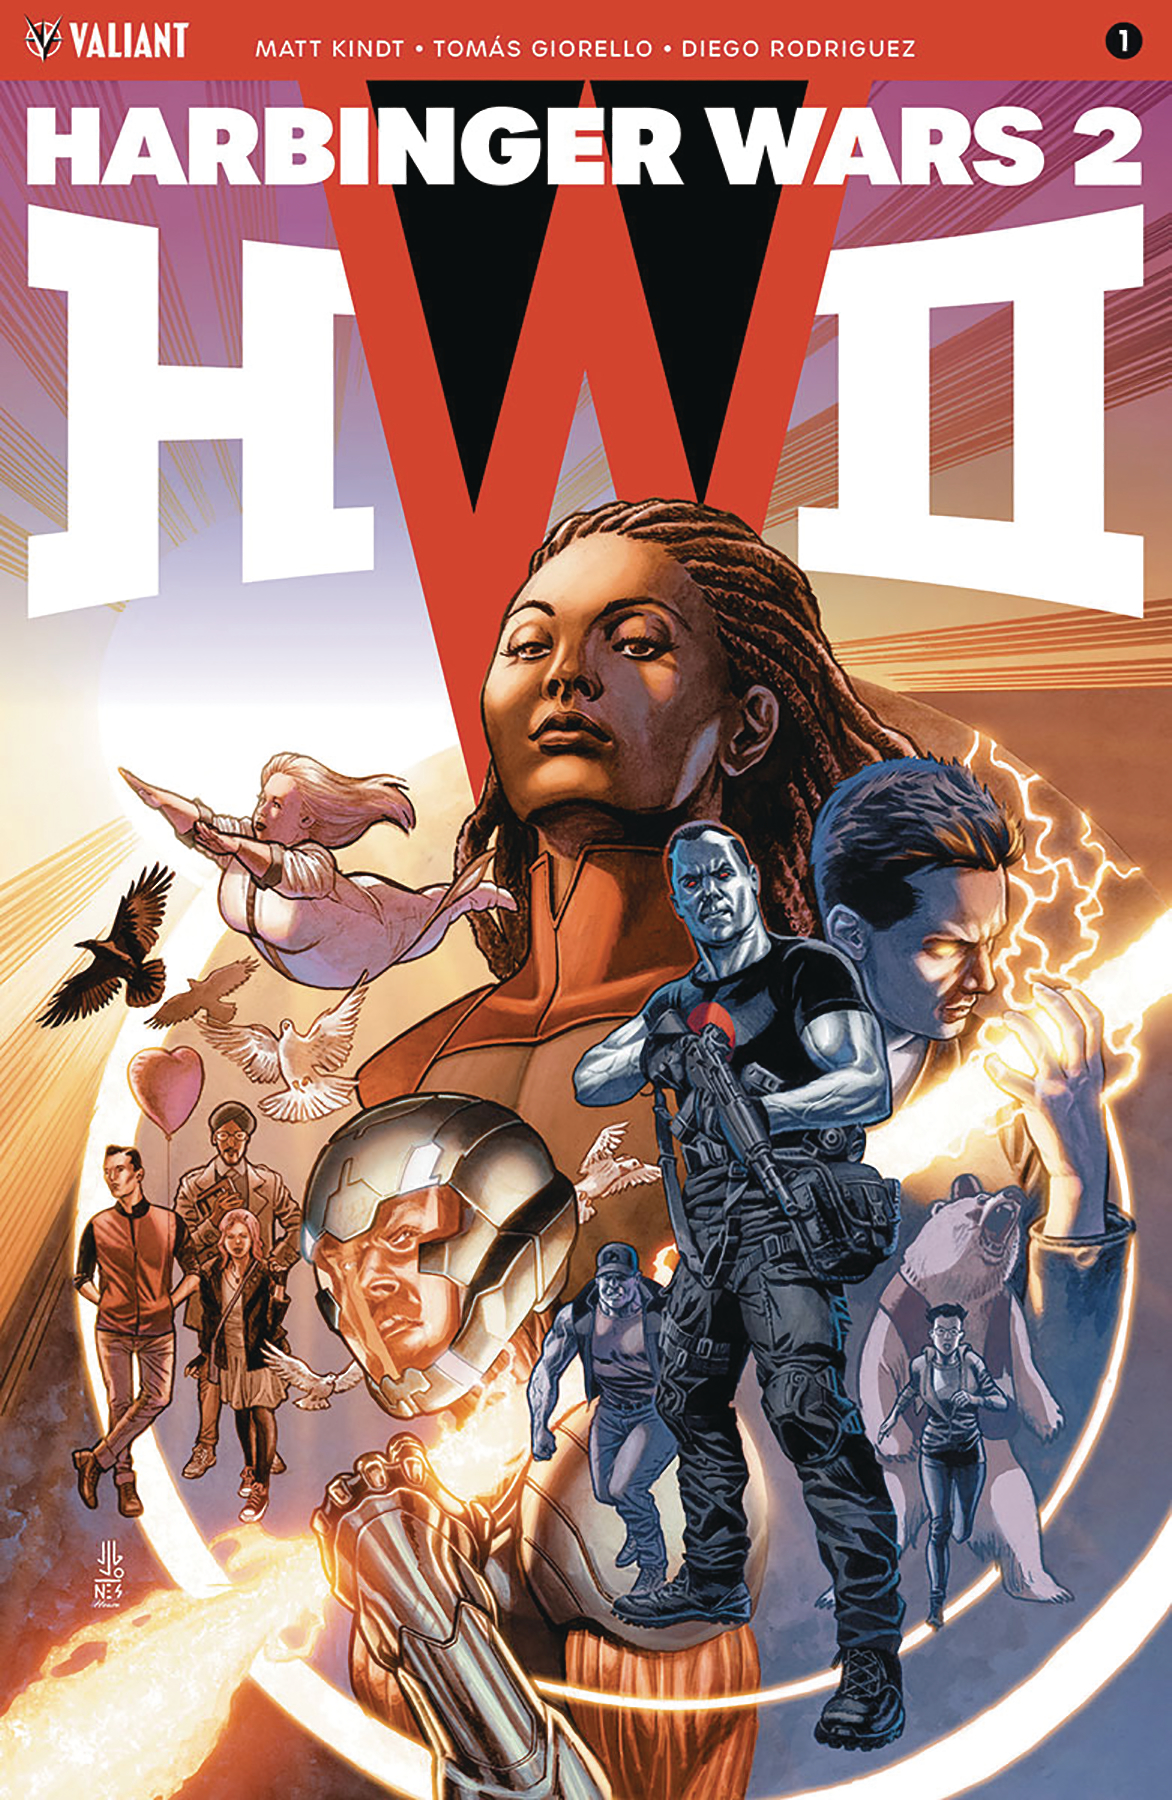 HARBINGER WARS 2 #1 (OF 4) CVR A JONES